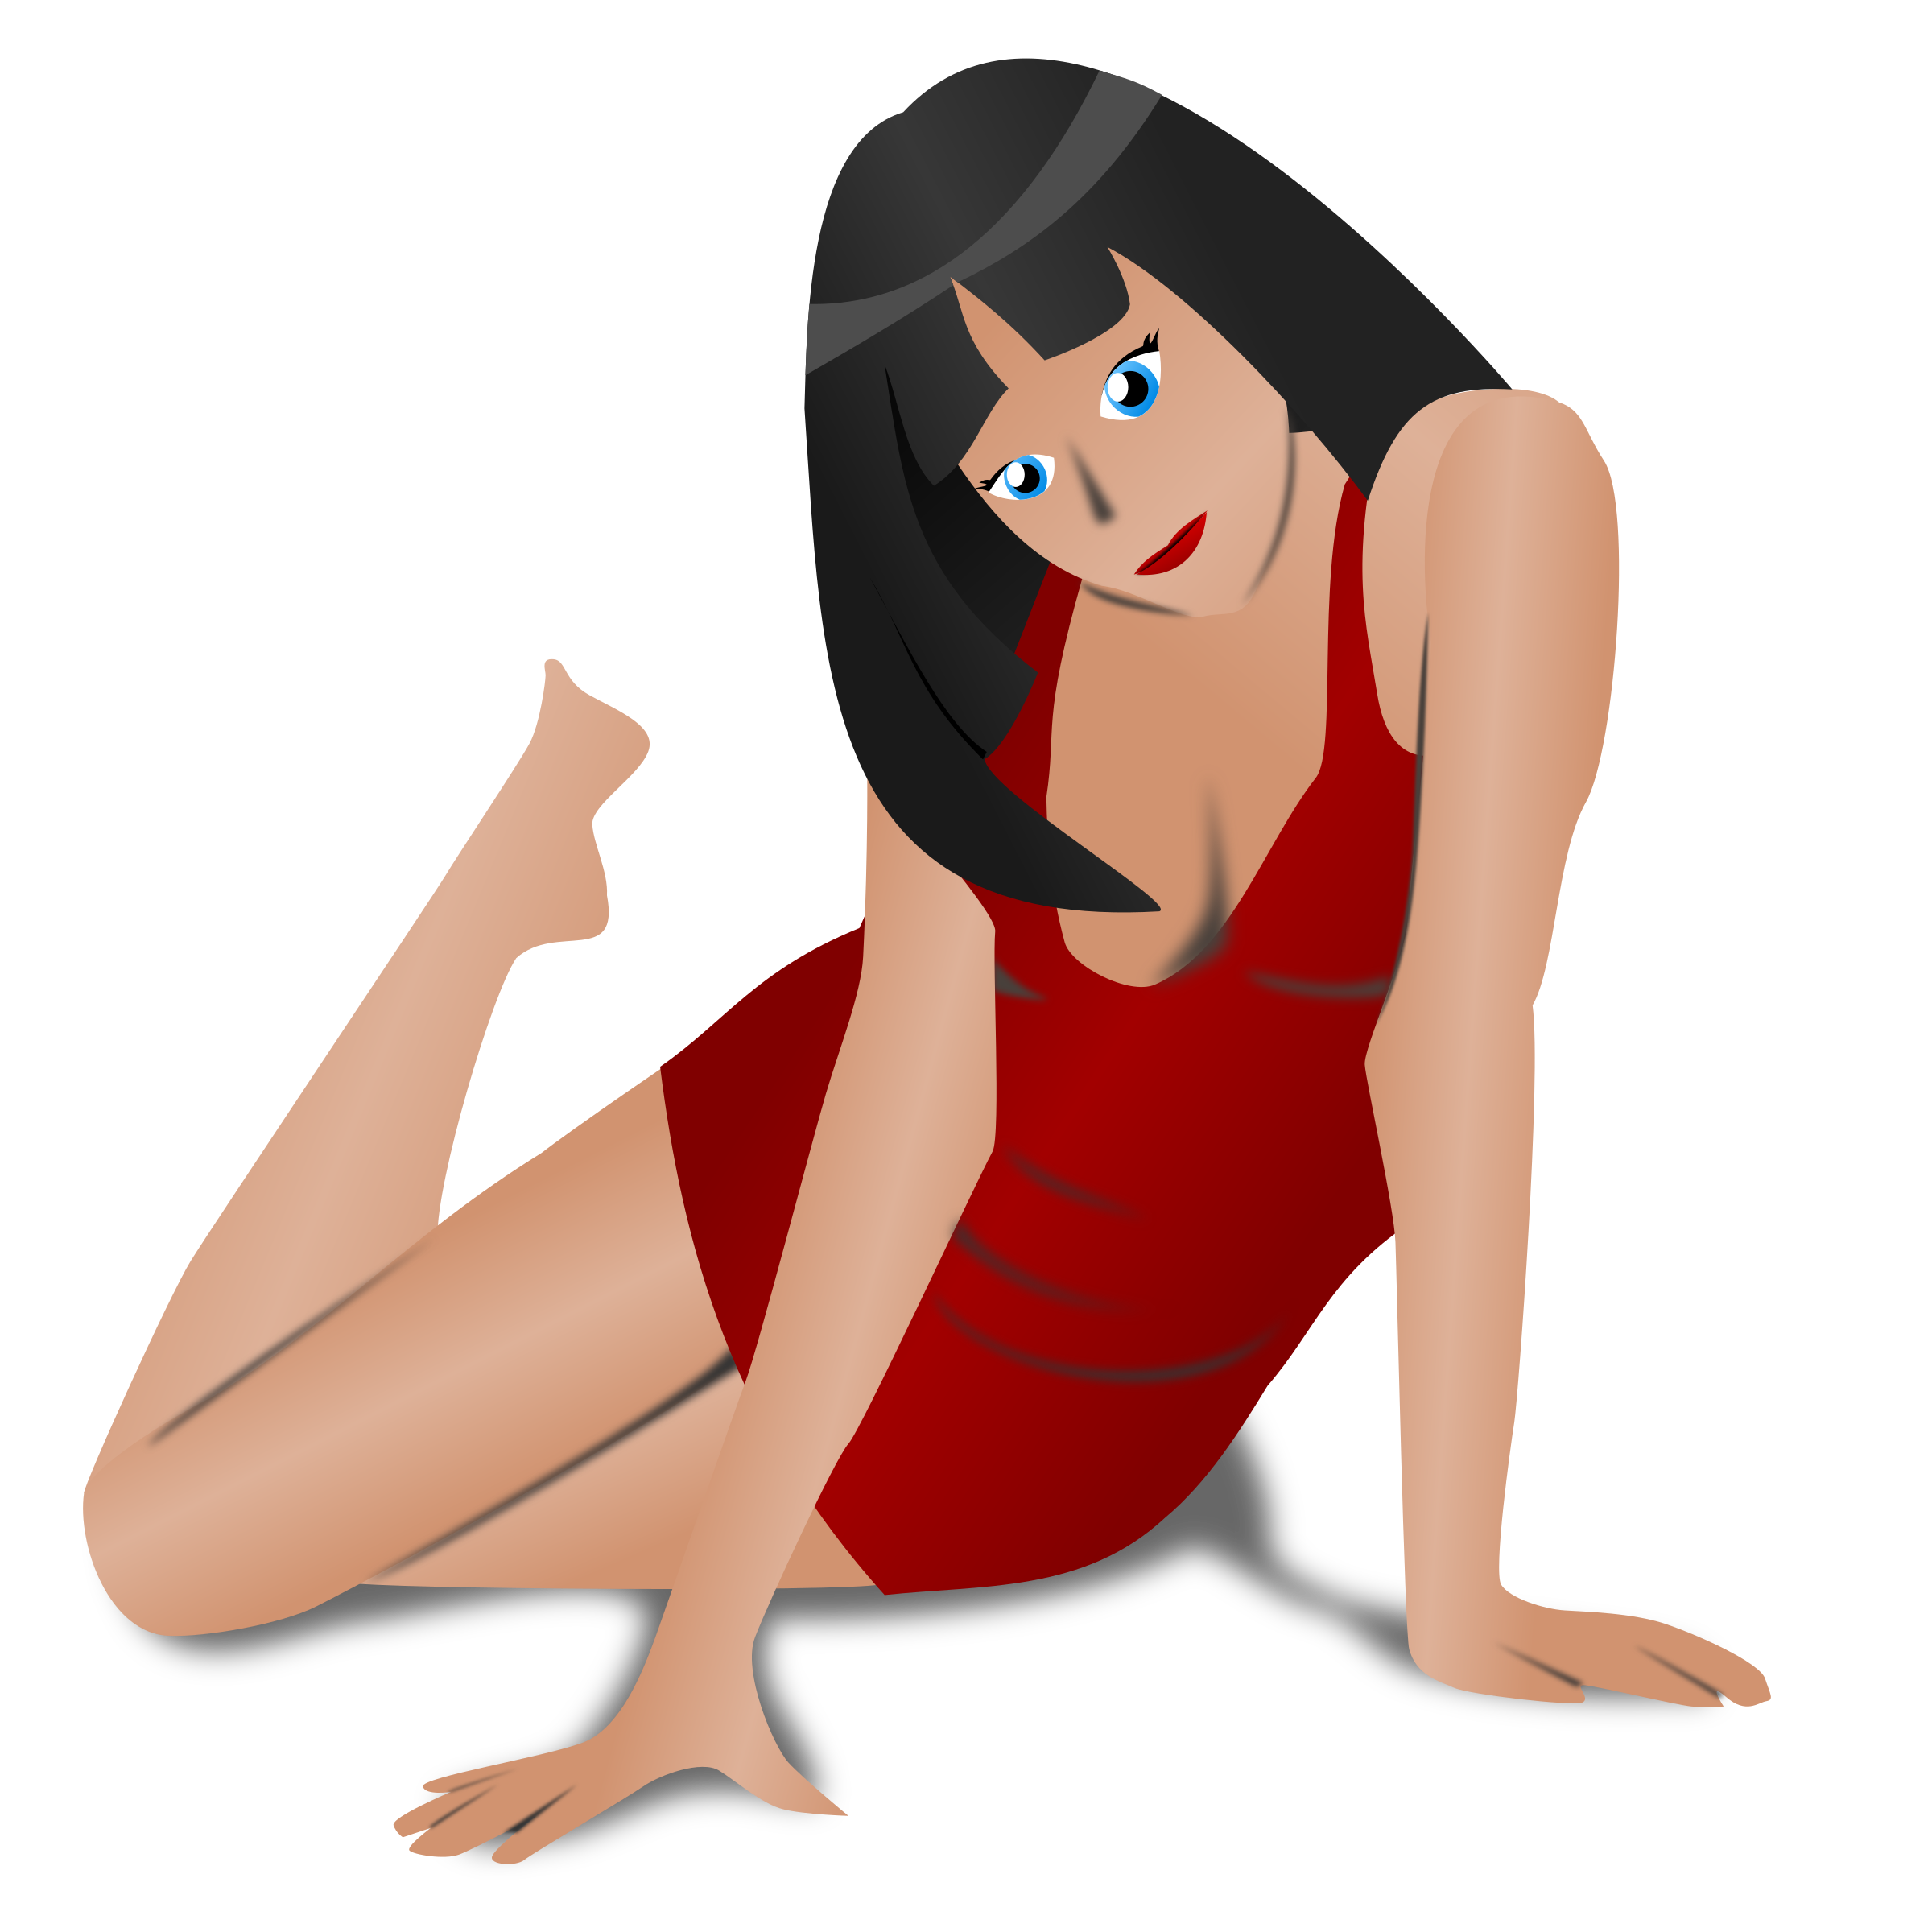 Women in red png. Clipart lady big image